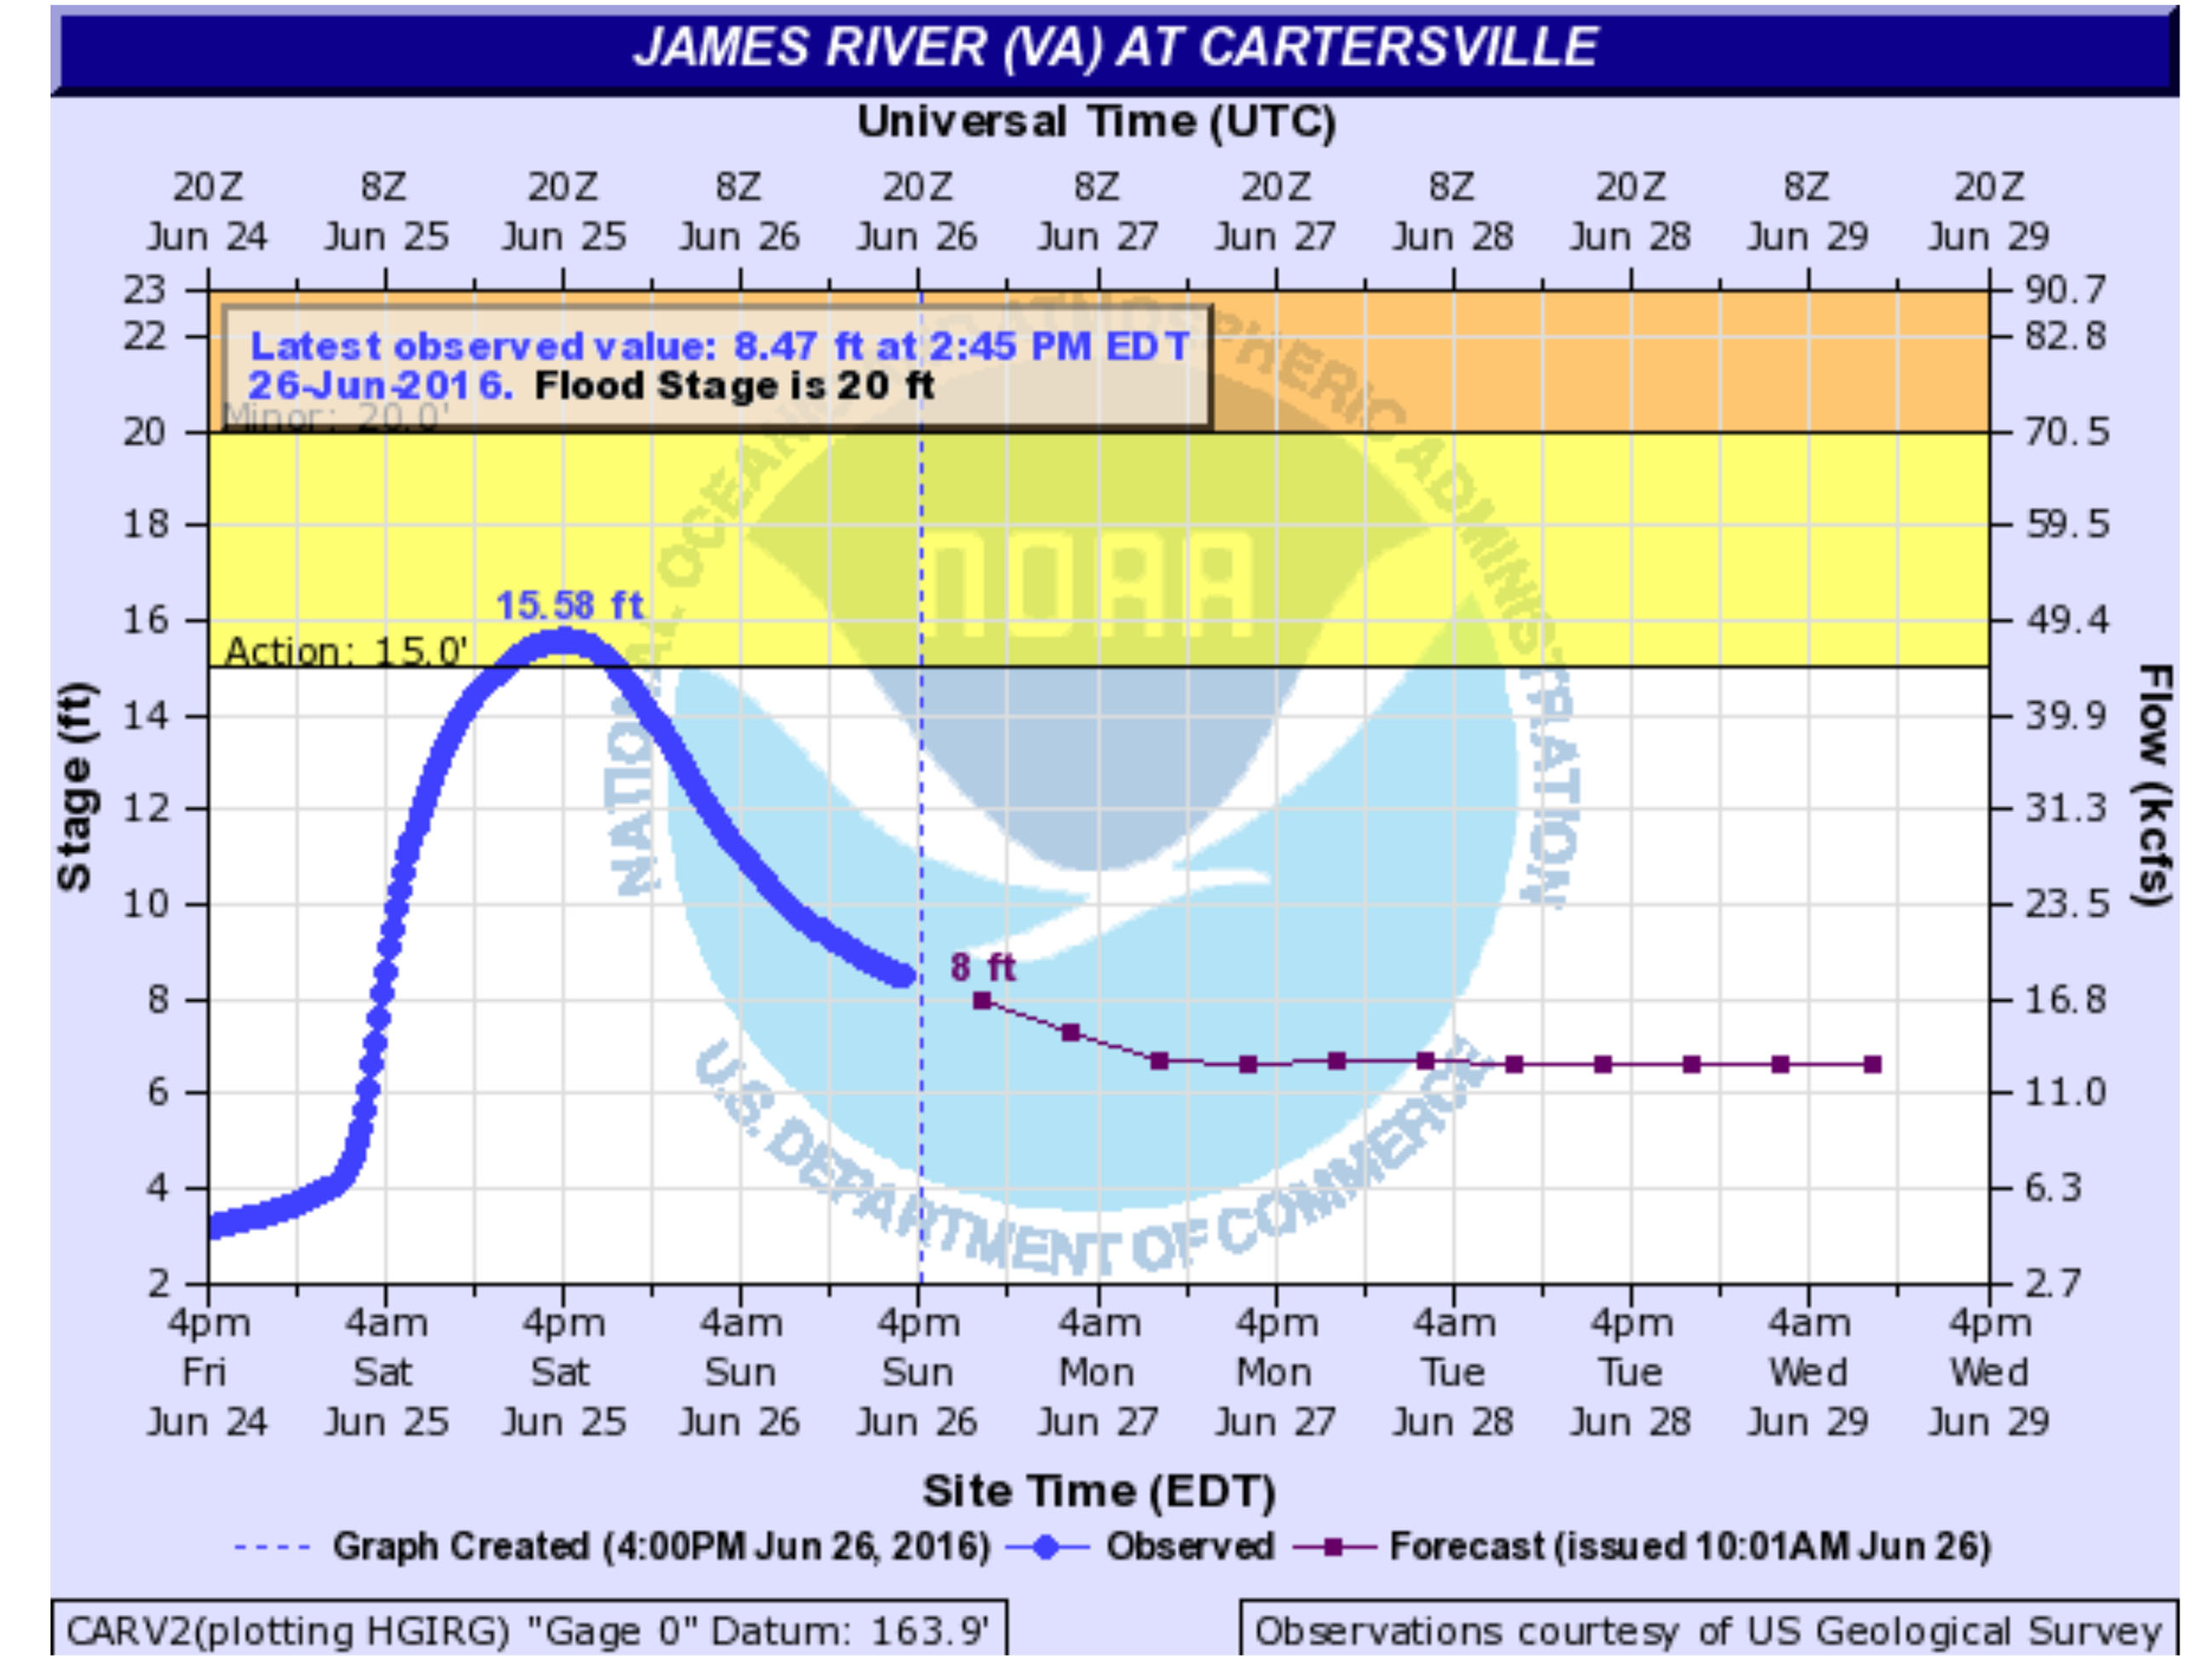 Cartersville River Level Data From Friday, June 24 to Sunday June 26, 2016